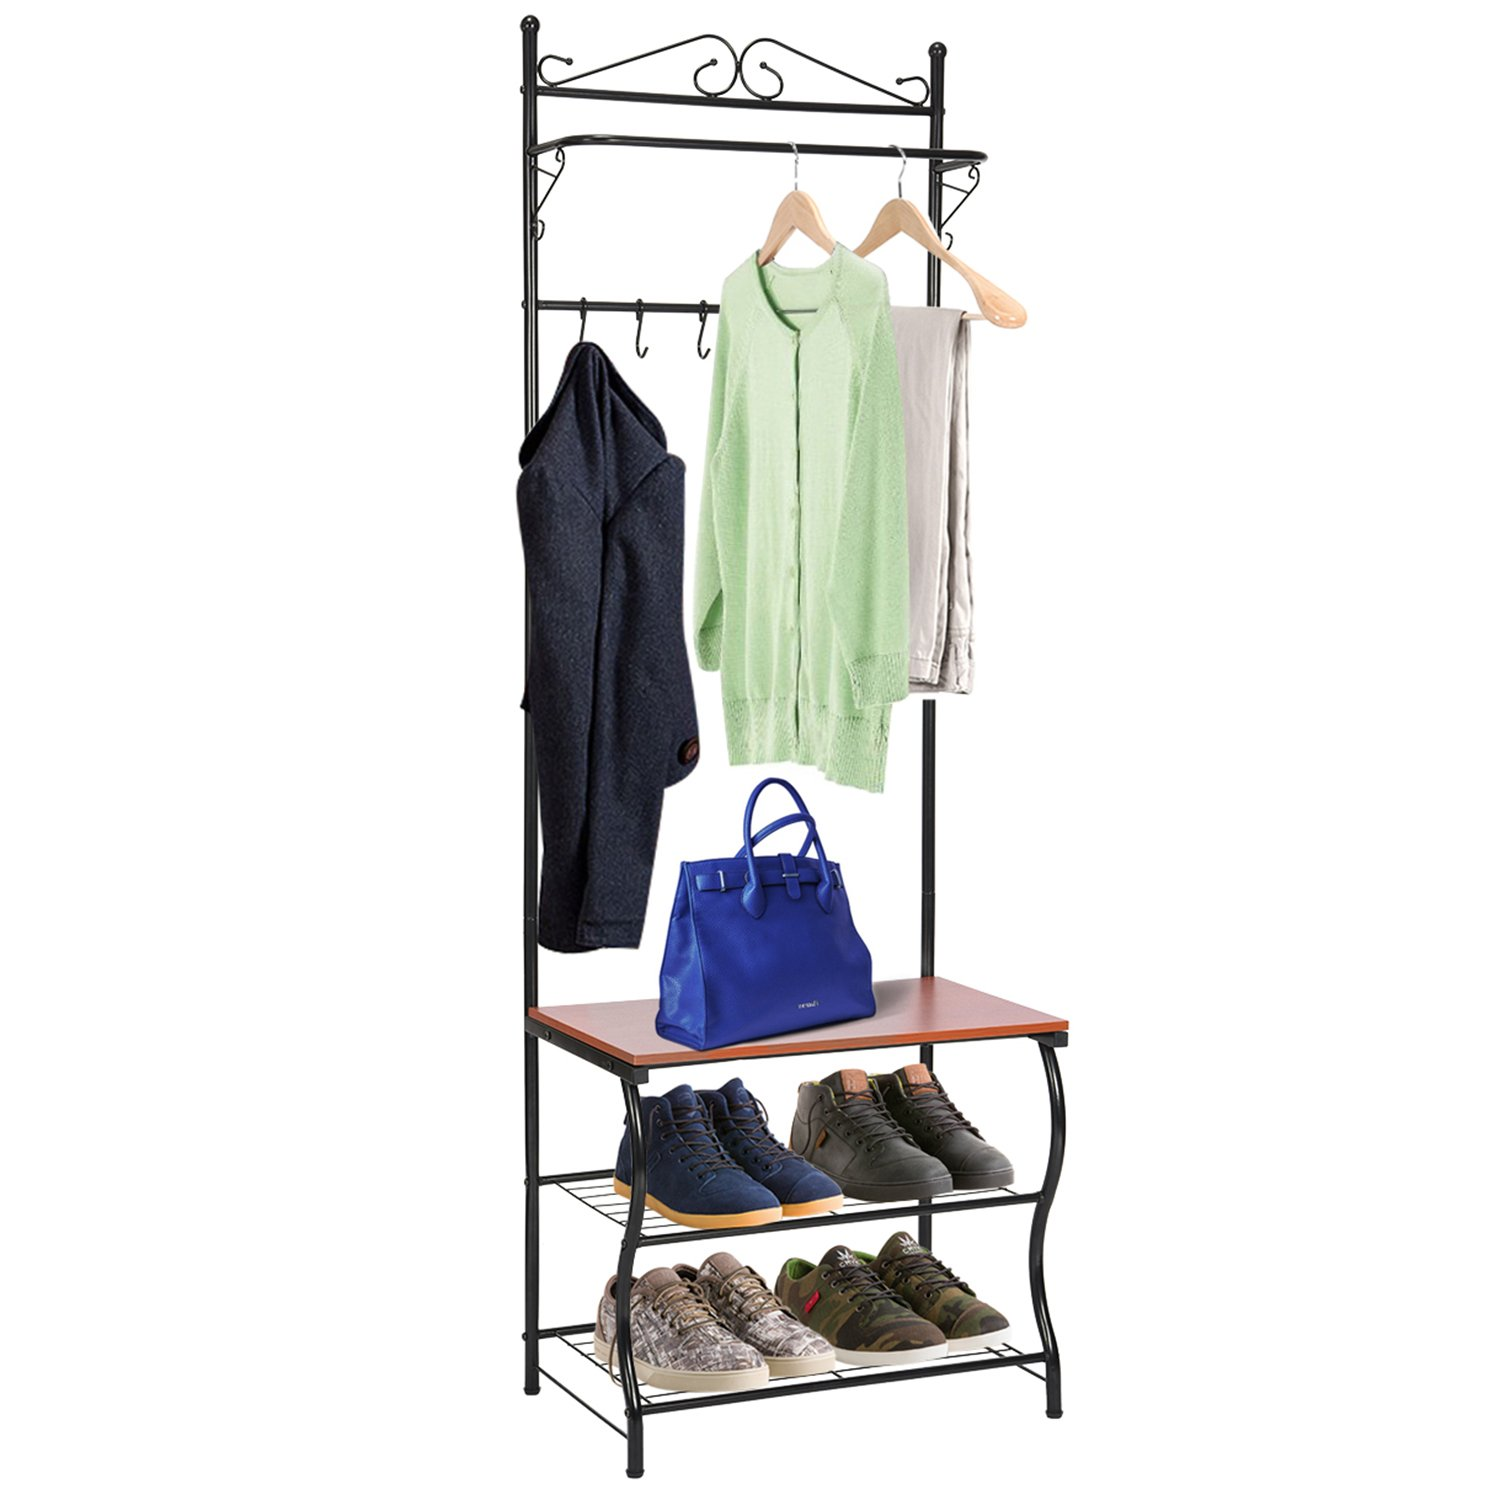 Entryway Bench with Coat Rack, MaidMAX Shoe Coat Rack Hall Tree with 3-Tier Shoe Bench Shelves, 5 Hooks & Hanging Bar for Entryway Storage, Black Finish 903046